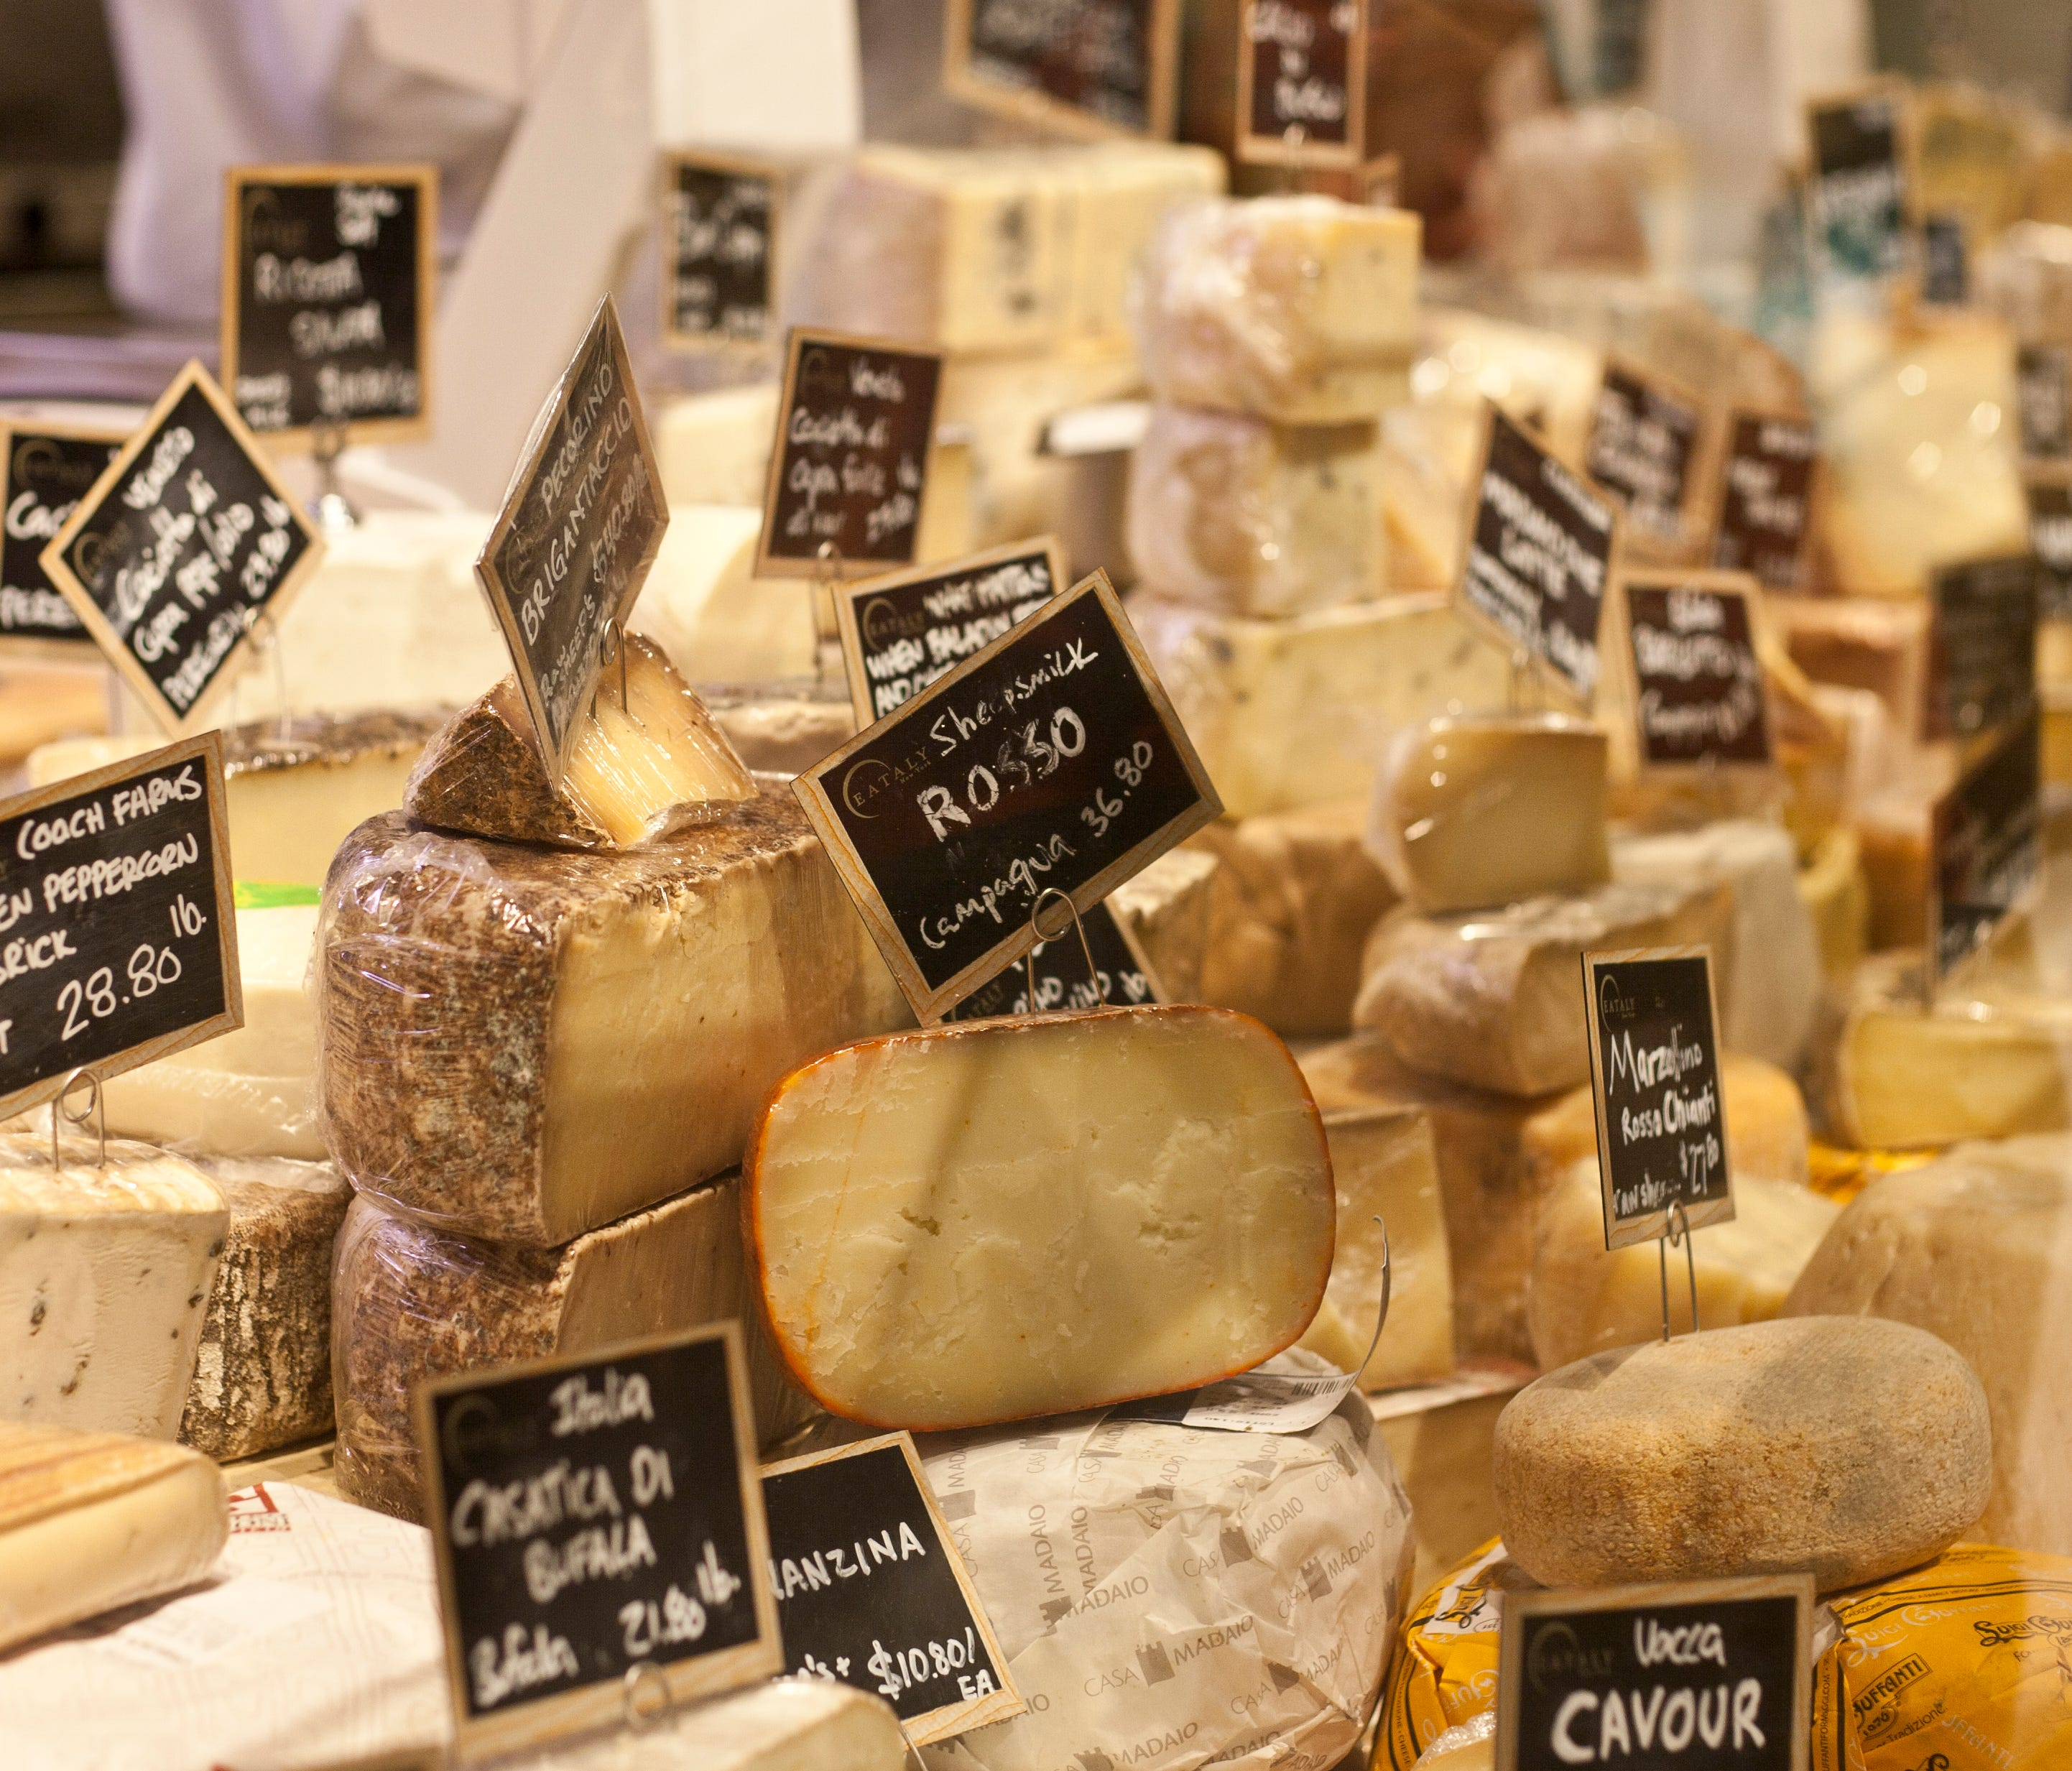 Pilgrimage here to choose from more than 300 cheeses from Italy and America. A cheesemonger can help you decide.